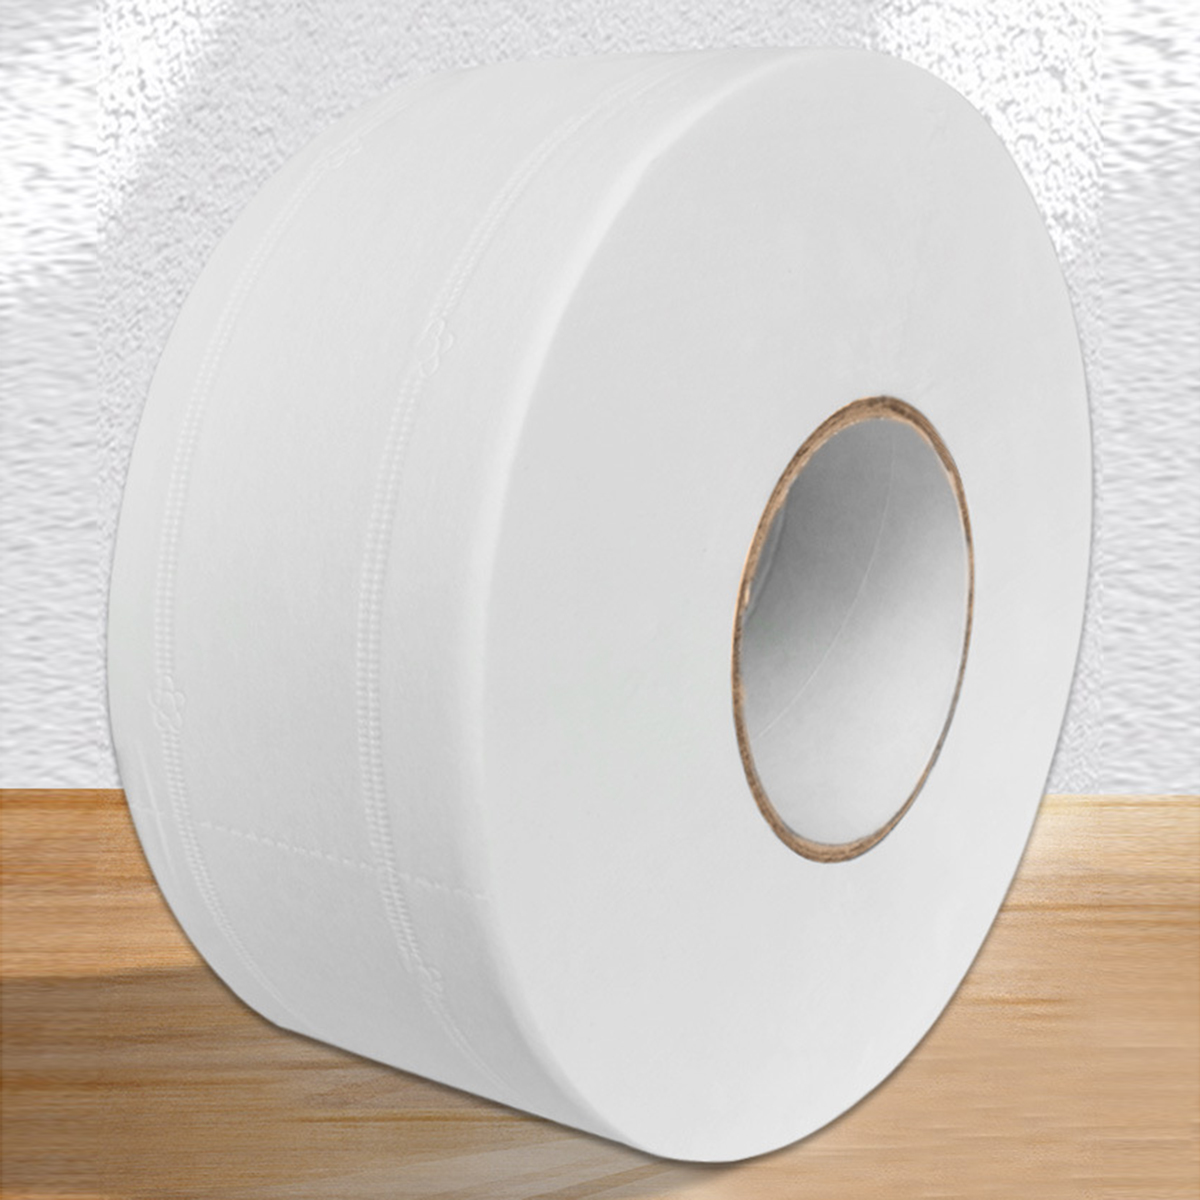 1 Roll Top Quality Jumbo Roll Toilet Paper 4-Layer Native Wood Soft Toilet Paper Pulp Home Rolling Paper Strong Water Absorption 3